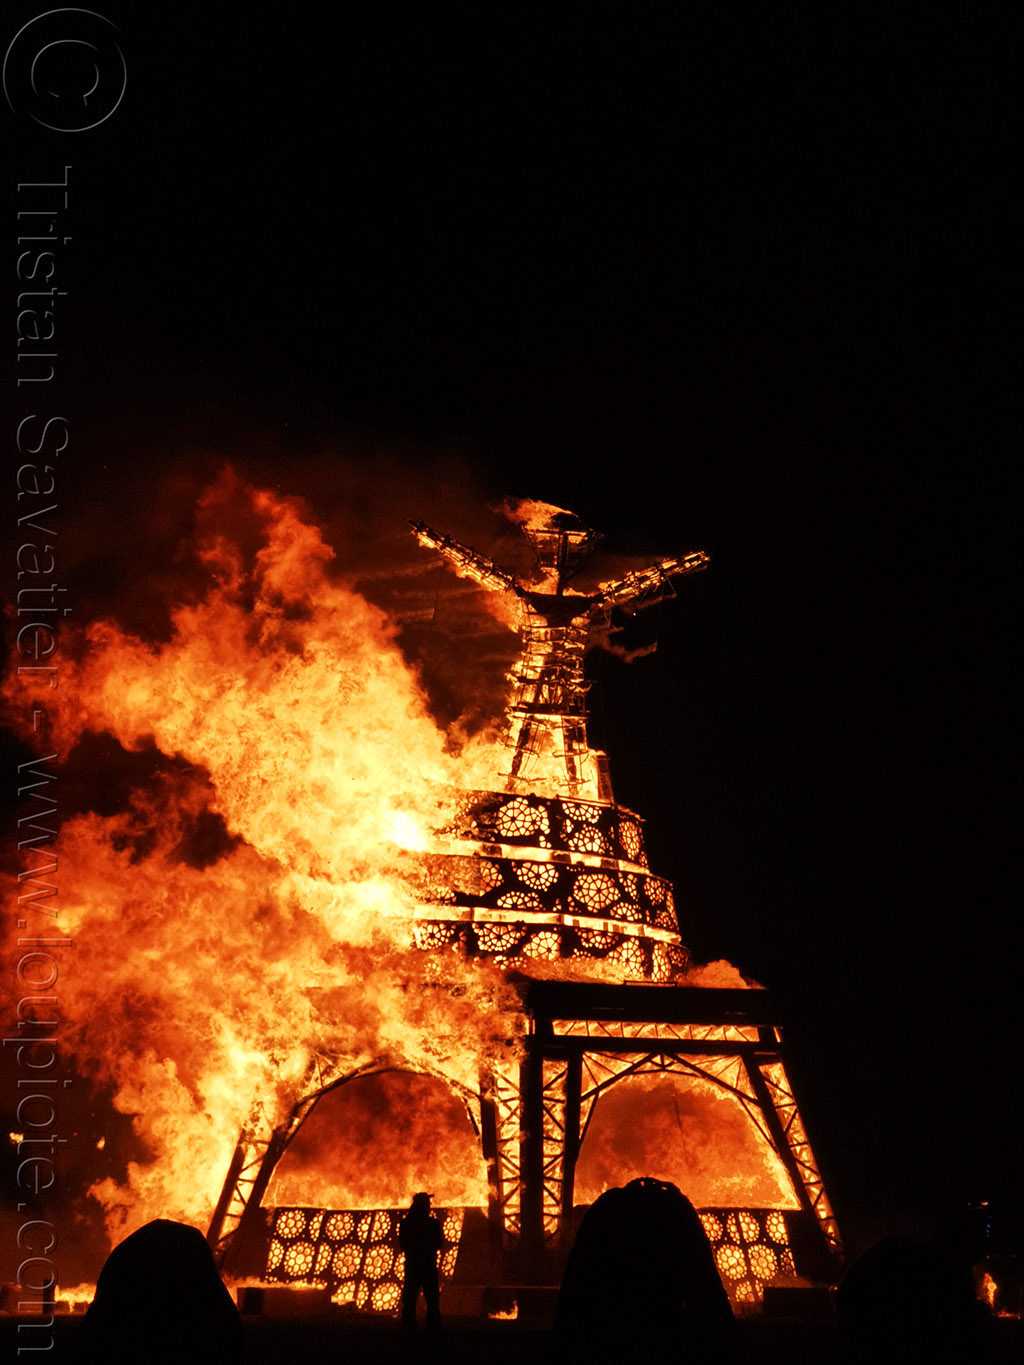 the man is burning - burning man 2019, burning man, fire, night of the burn, the man